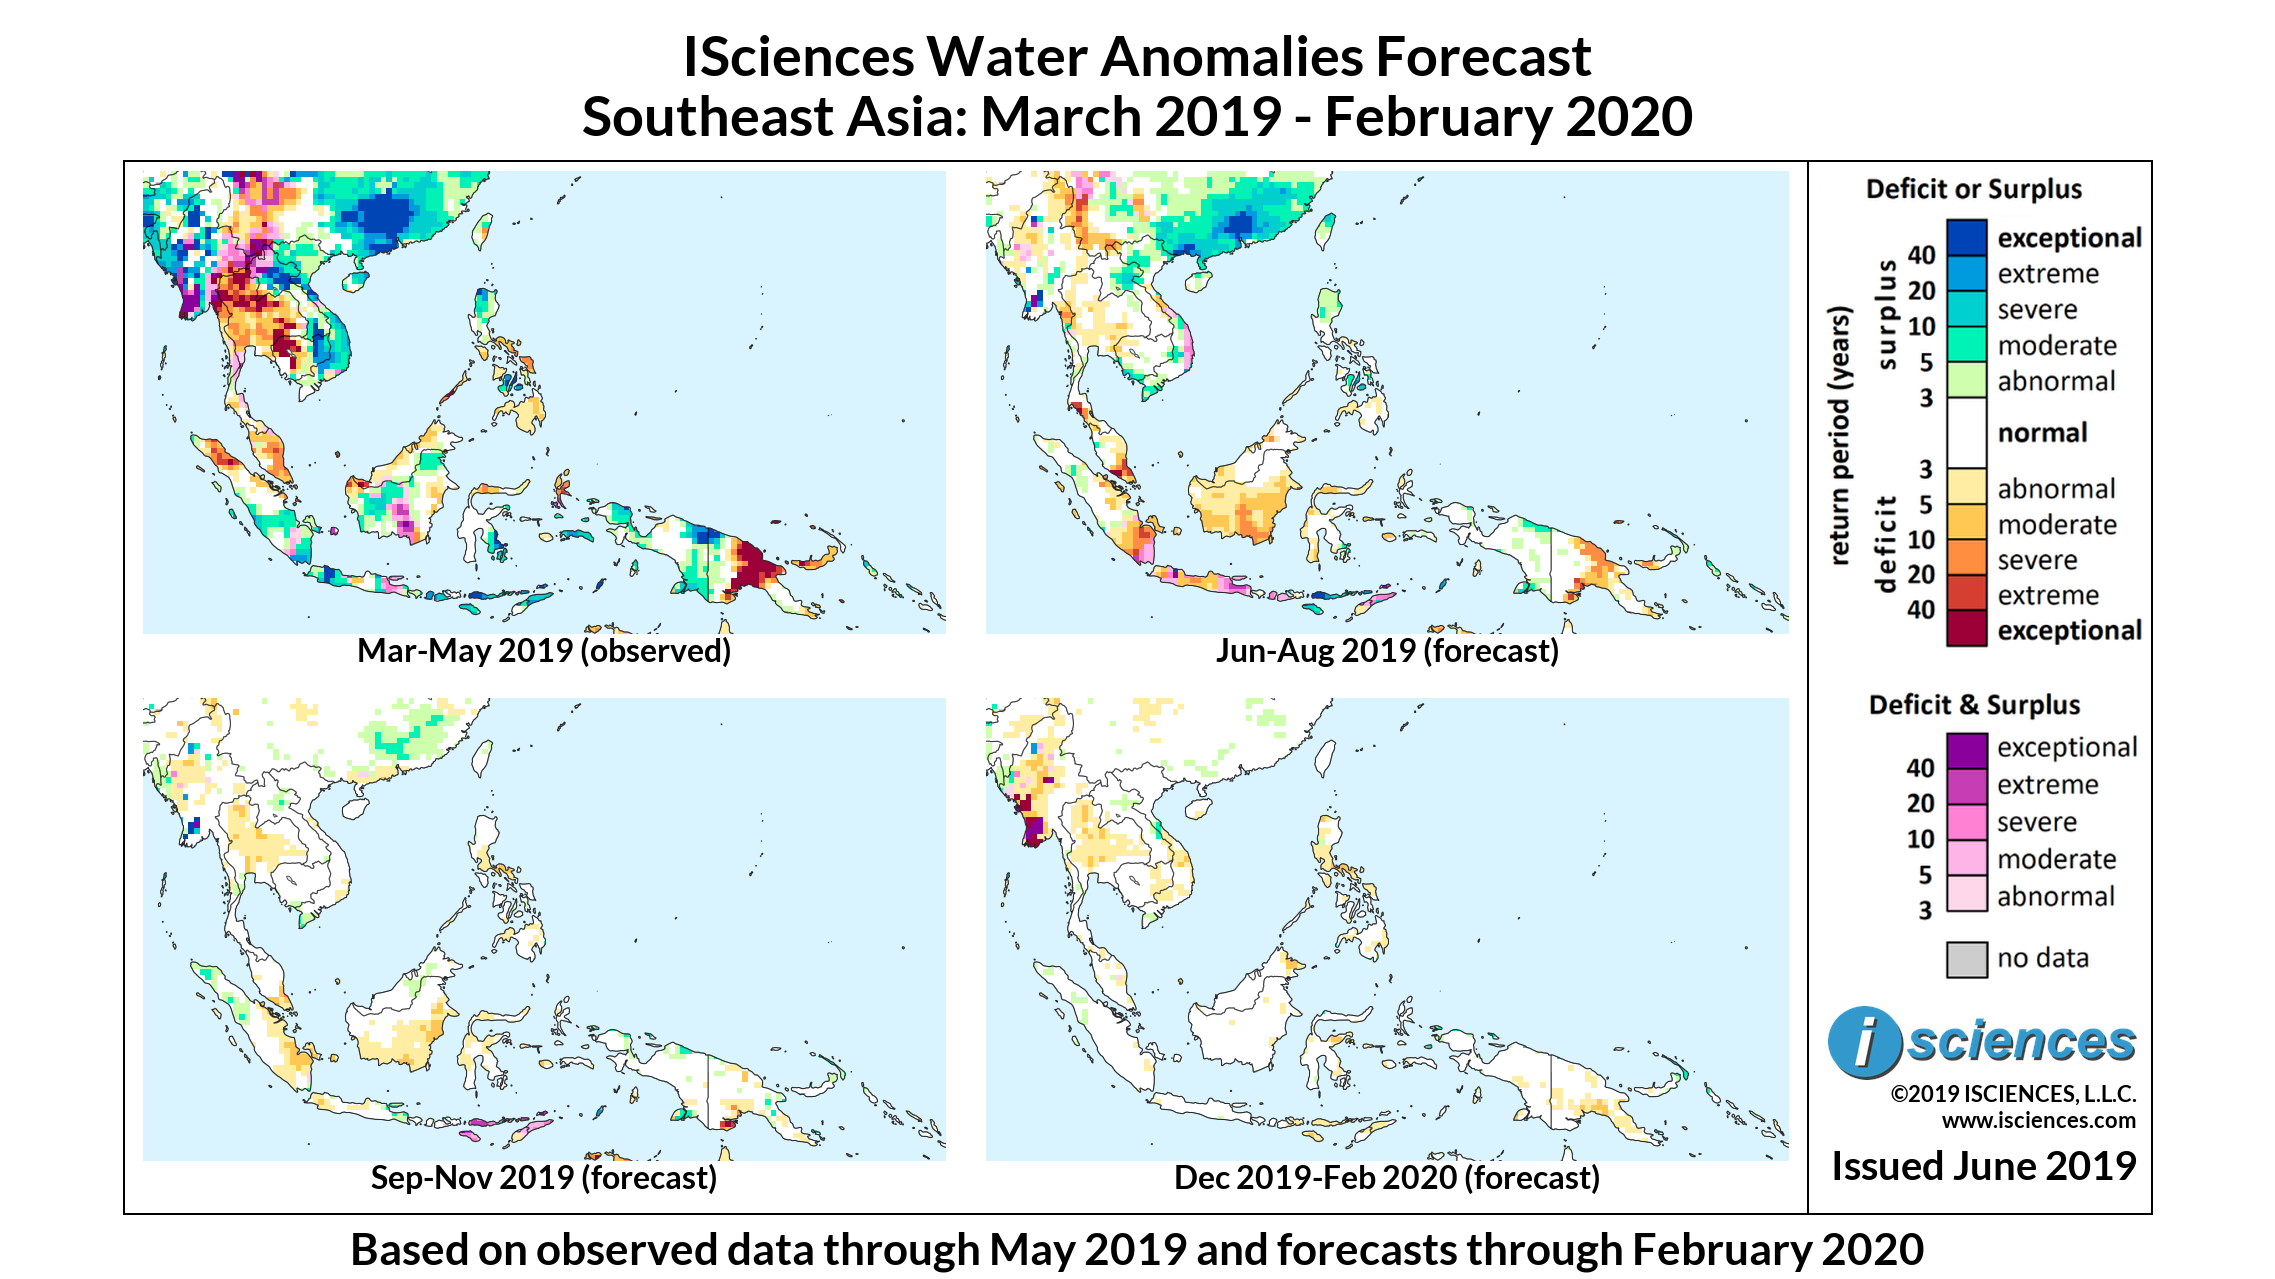 ISciences_Southeast_Asia_Composite_Adjusted_201903-202002_3mo_panel.png